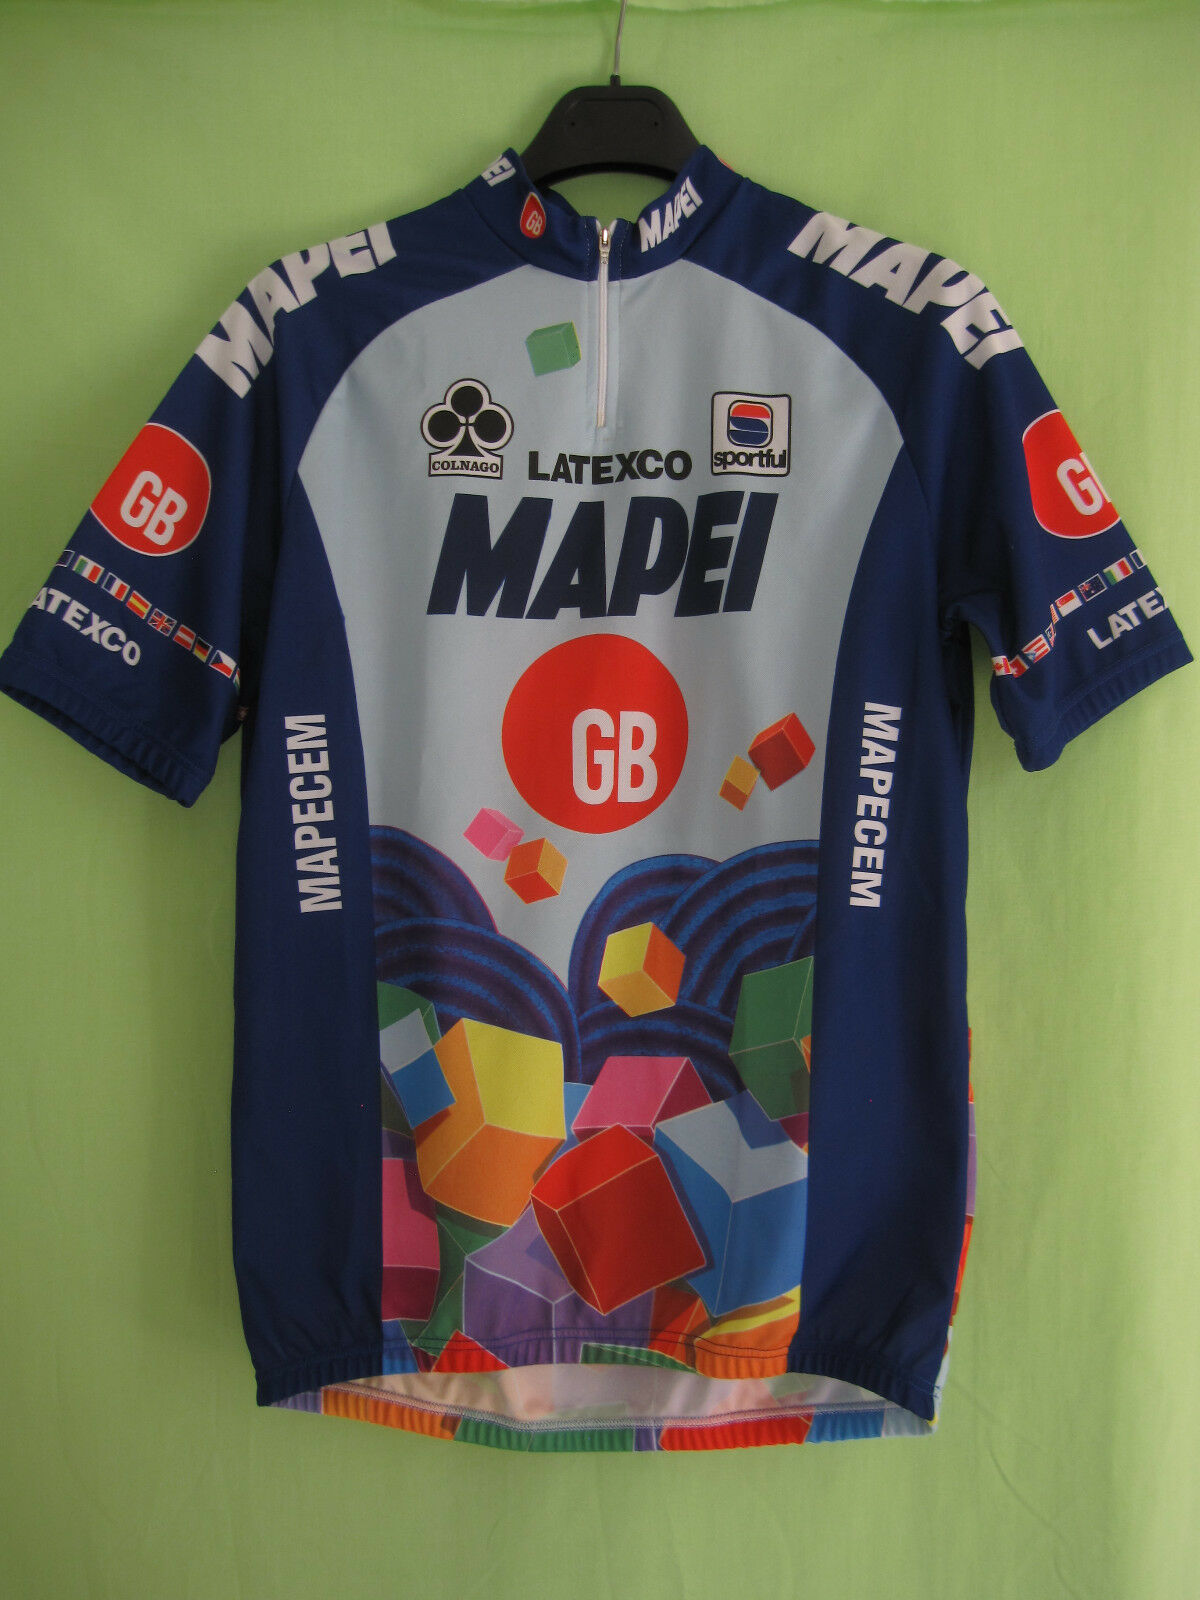 Maillot cycliste Mapei GB Tour 1996 Colnago Vintage Cycling jersey - XL